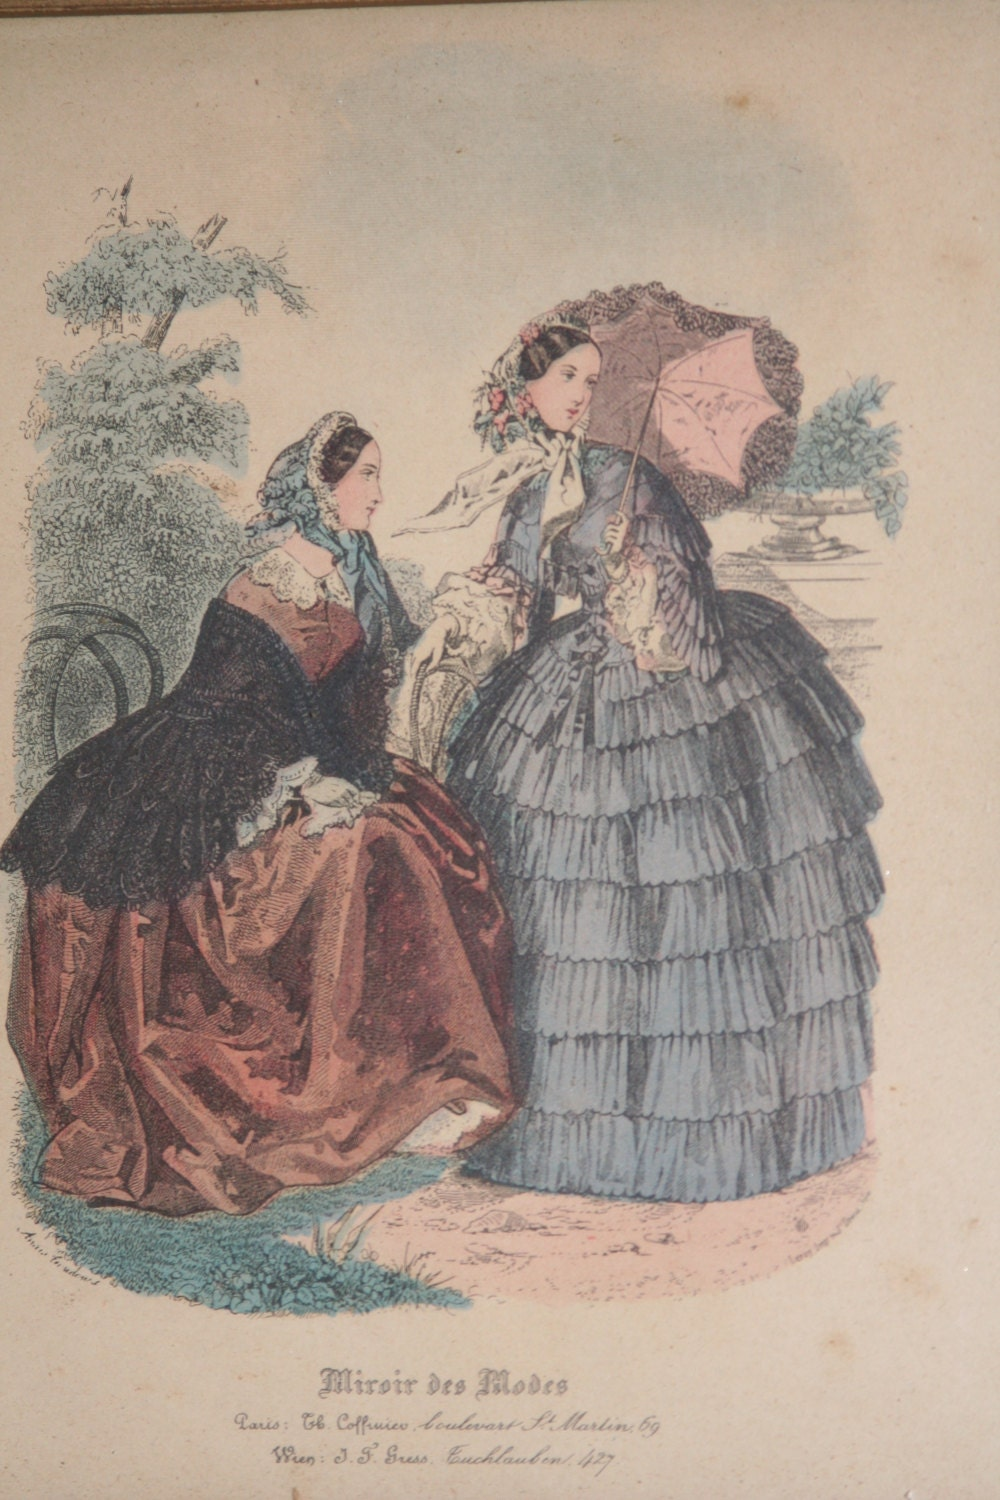 miroir des modes print fashion print hand colored print